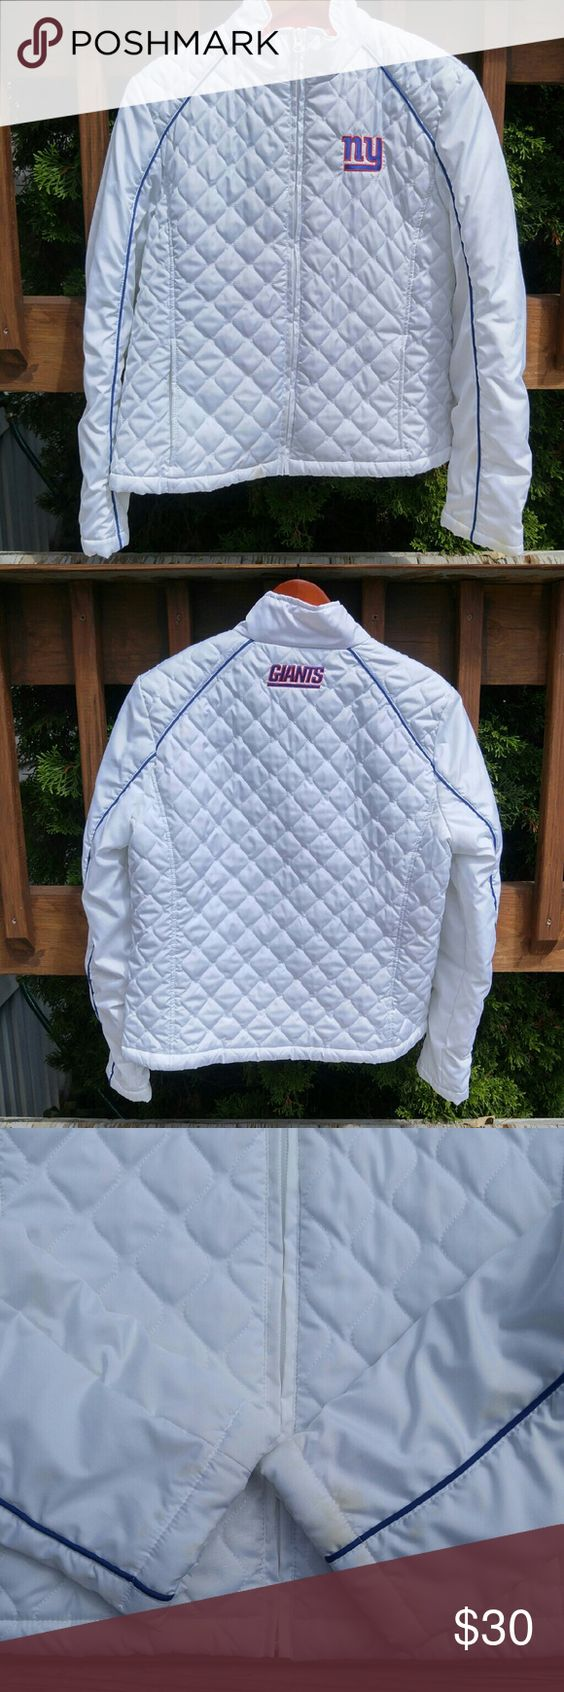 NY Giants Jacket Super cute, lightweight jacket. Official, from the NFL Store online. A must for New York Giants fans!   Some discoloration on bottom of sleeves and near zipper. See photos! NFL Jackets & Coats